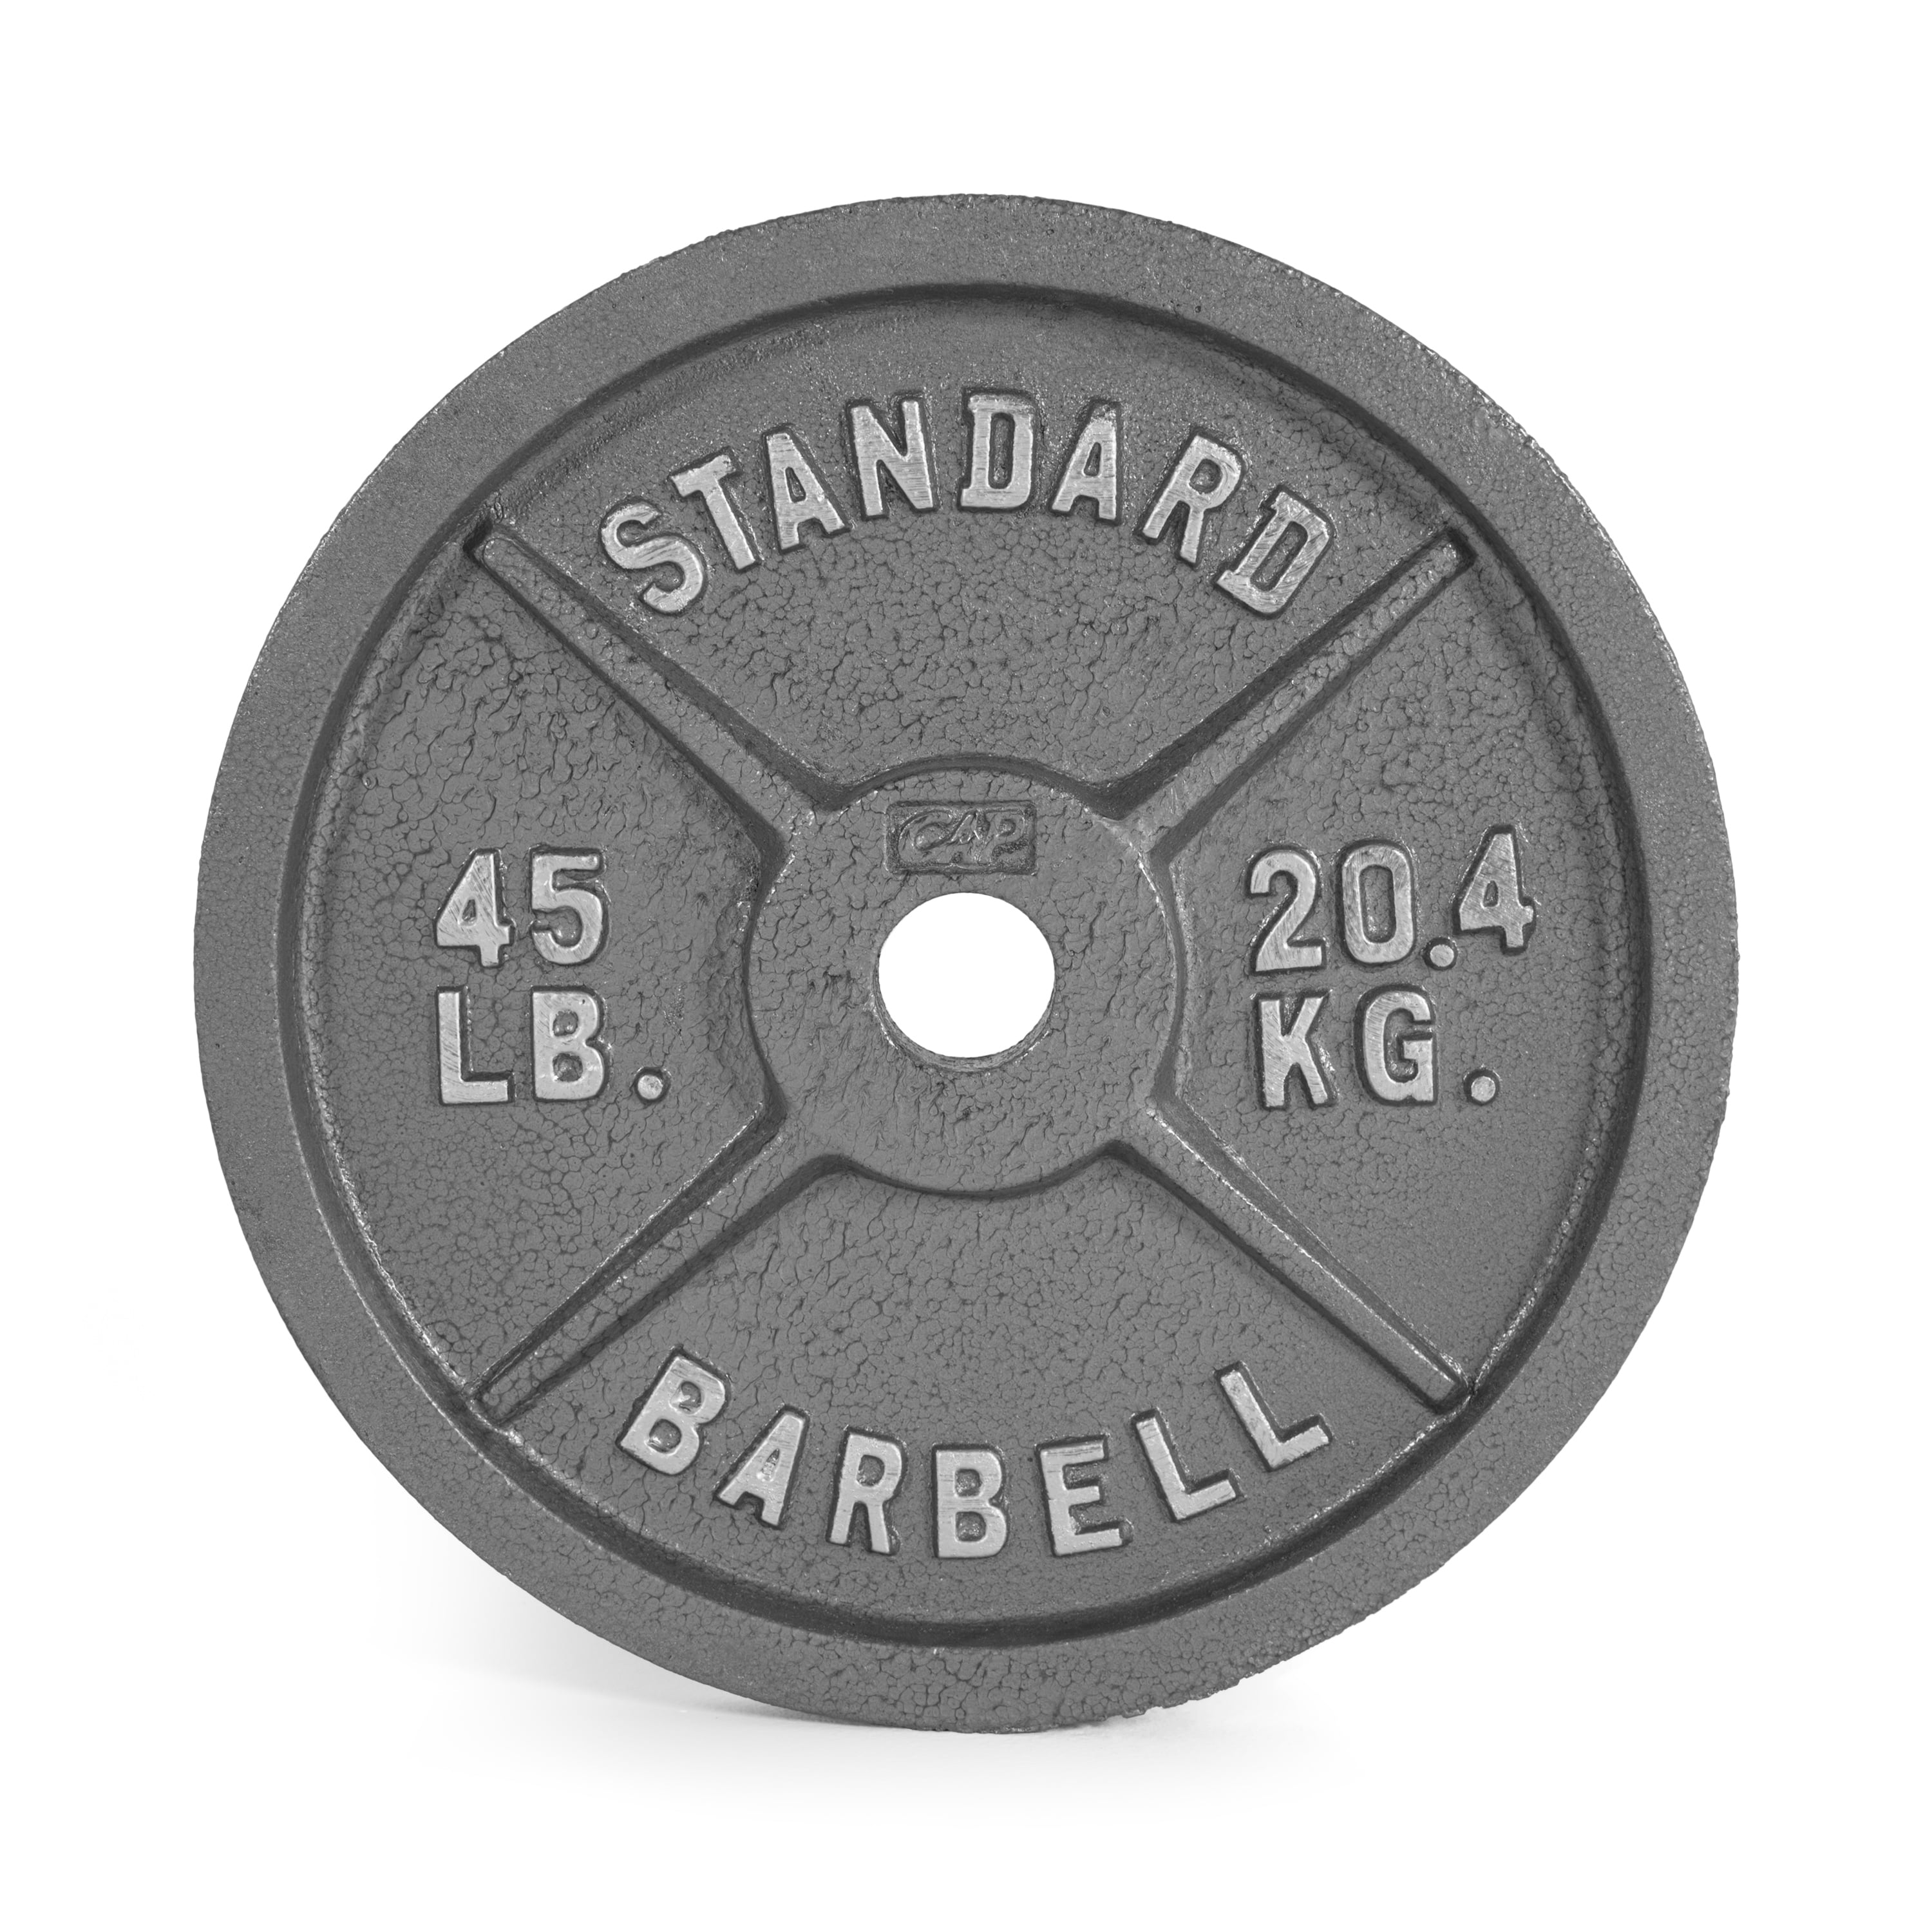 CAP Barbell 2-Inch Olympic Plate, Assorted Colors by Cap Barbell